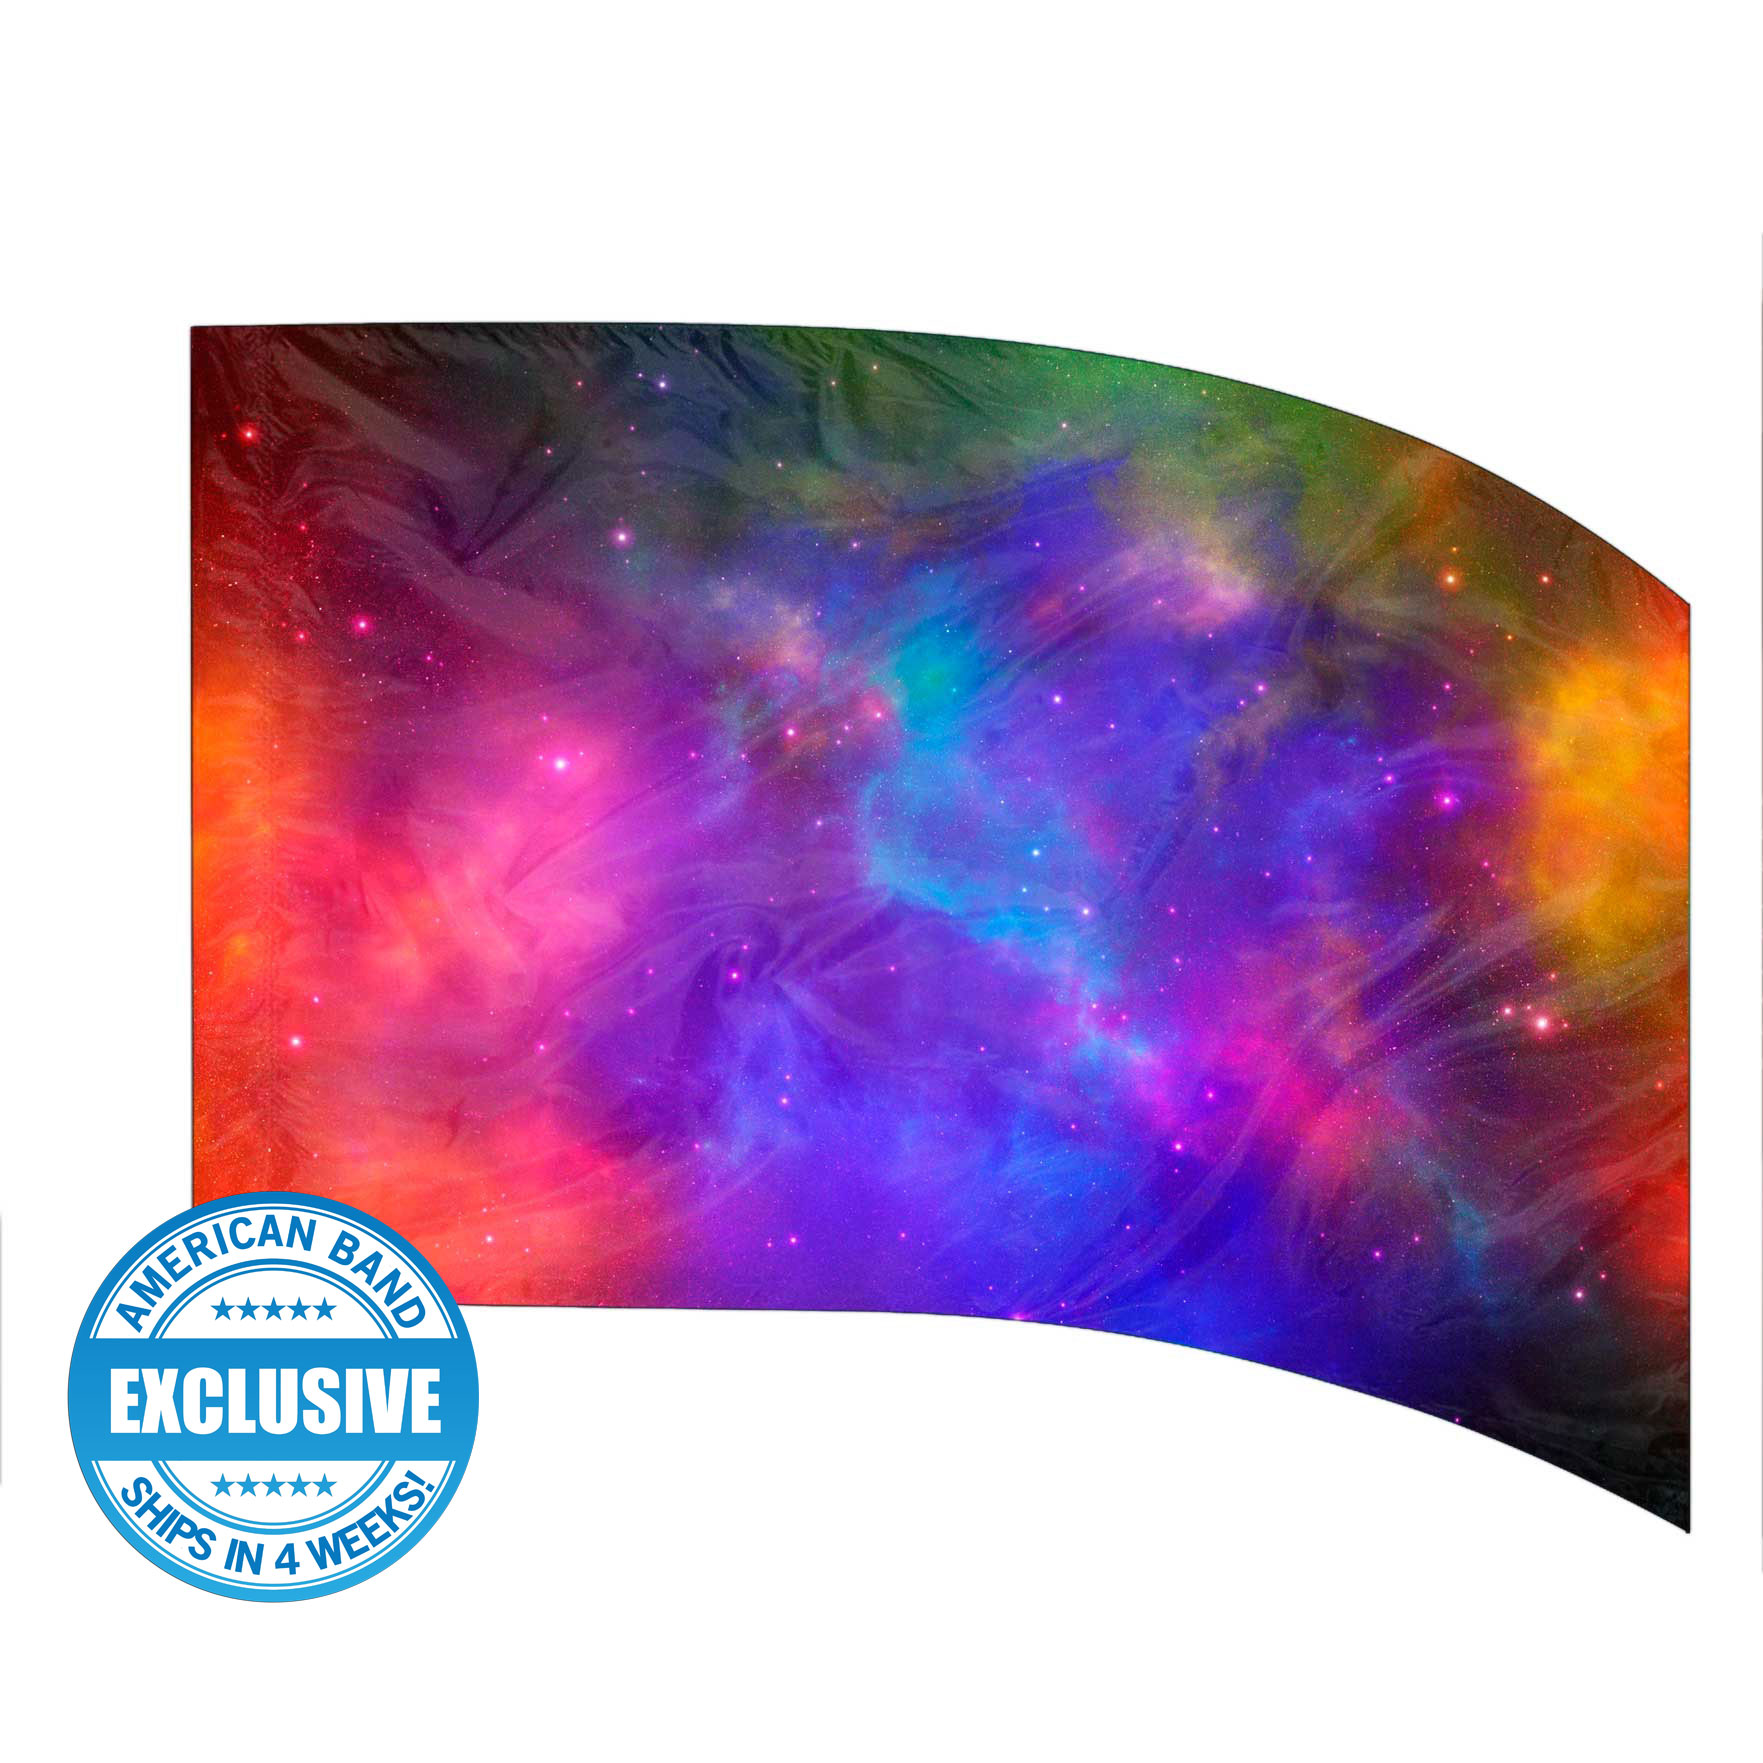 Made-to-Order Digital Cosmos Flags: Style 6